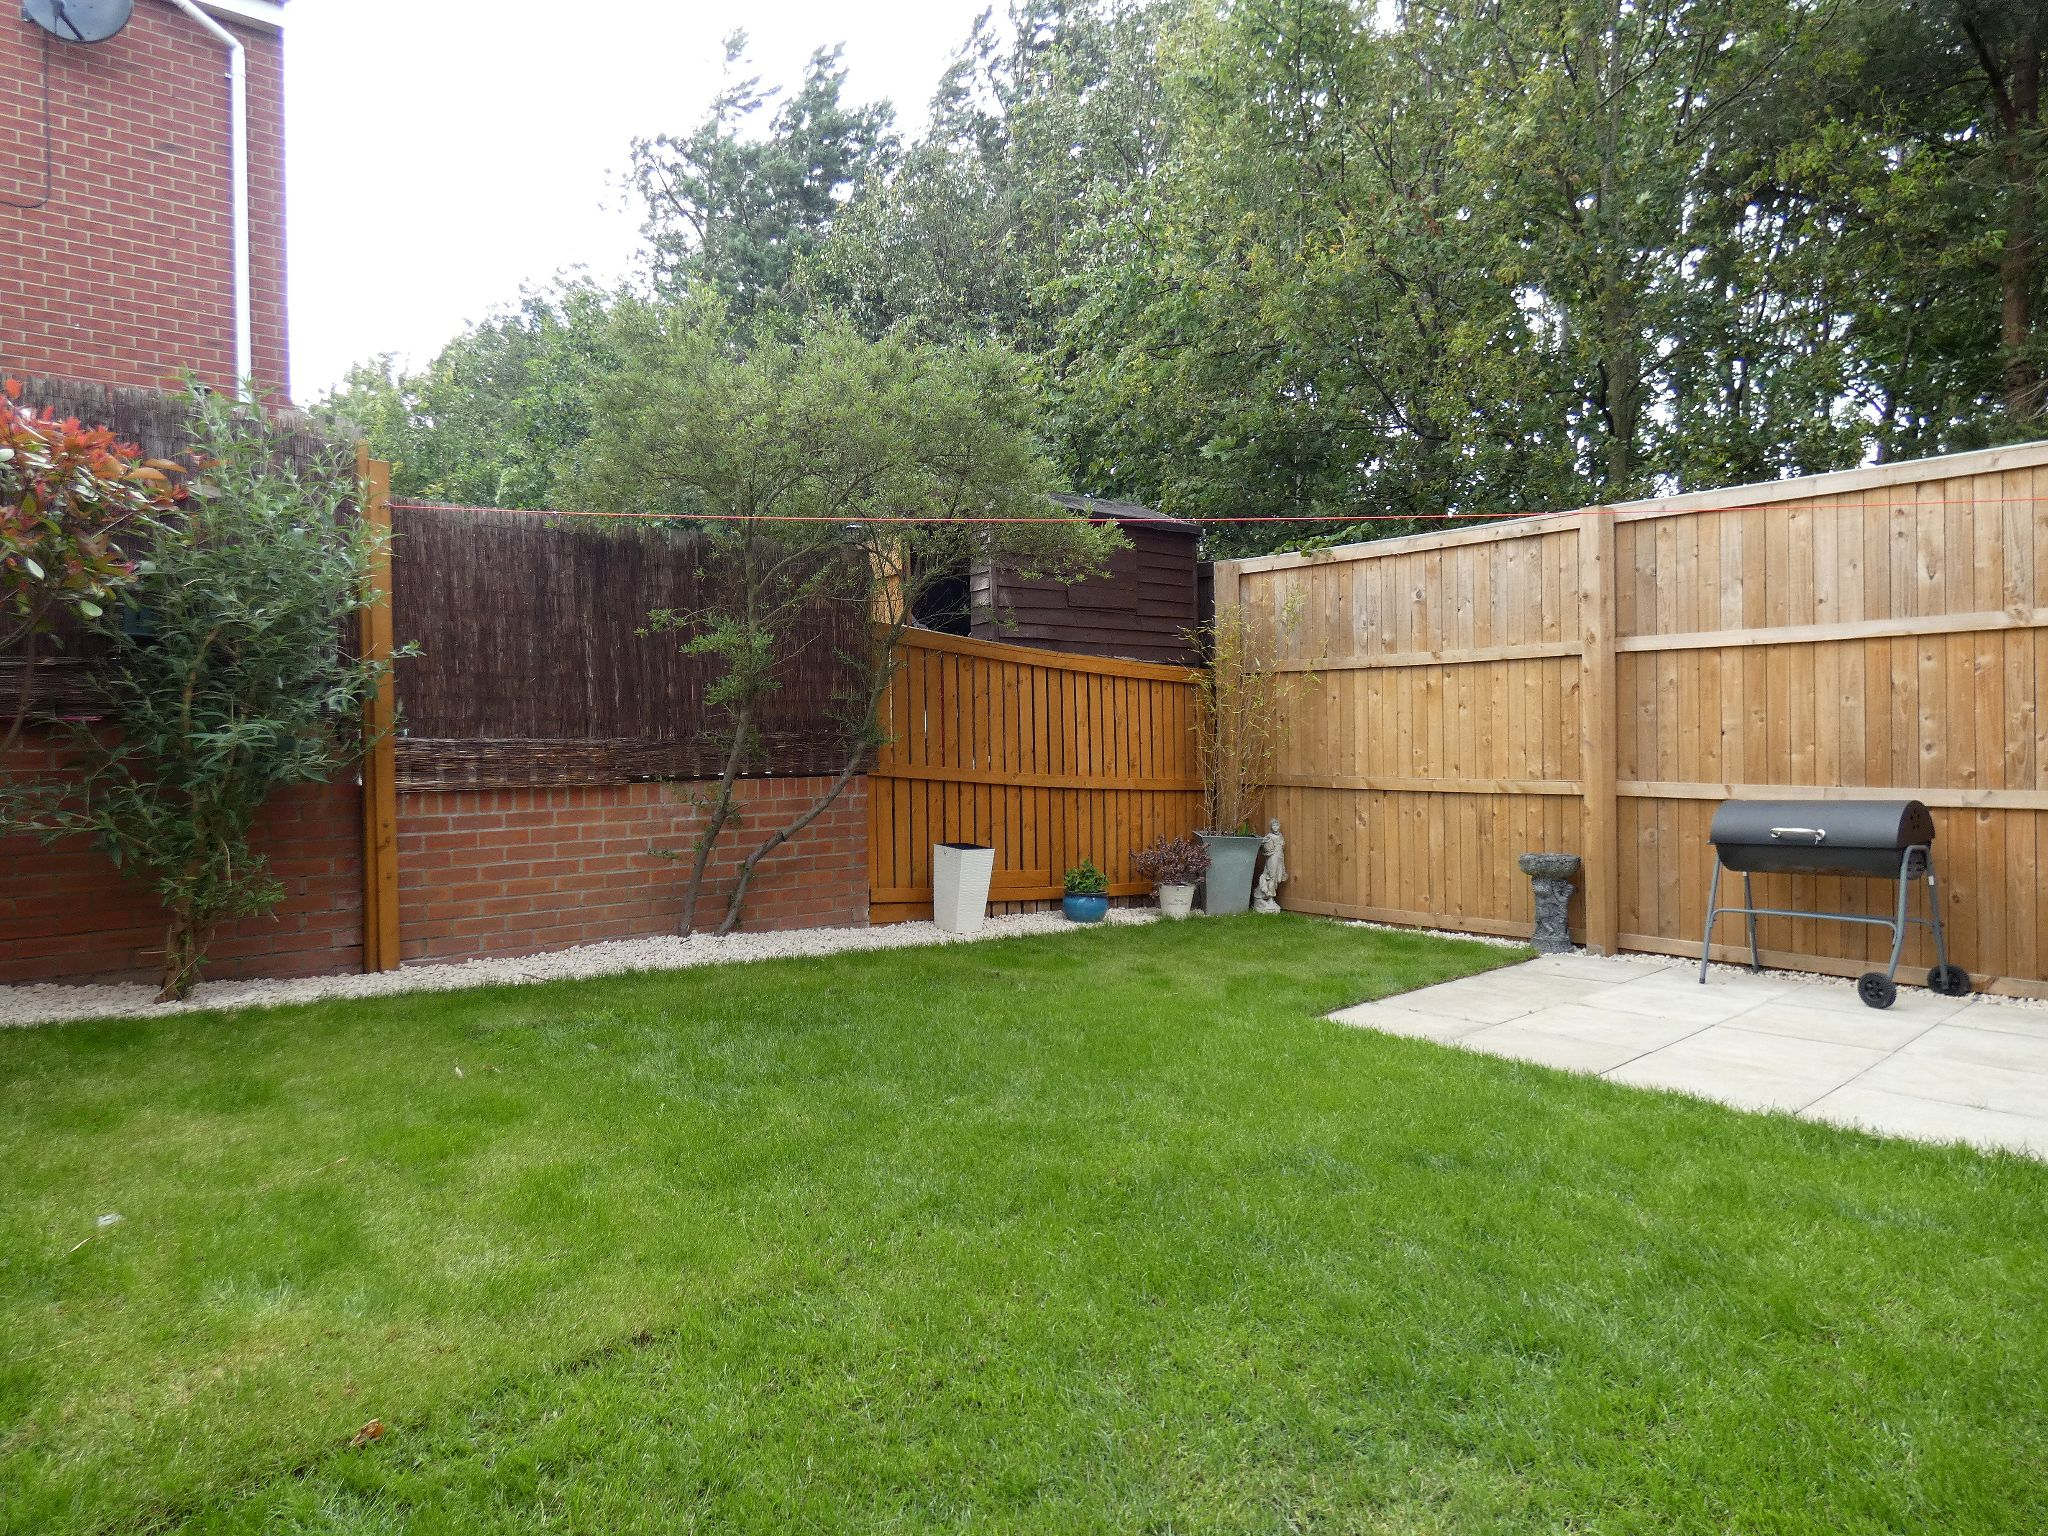 3 bedroom semi-detached house For Sale in Bishop Auckland - Externally.